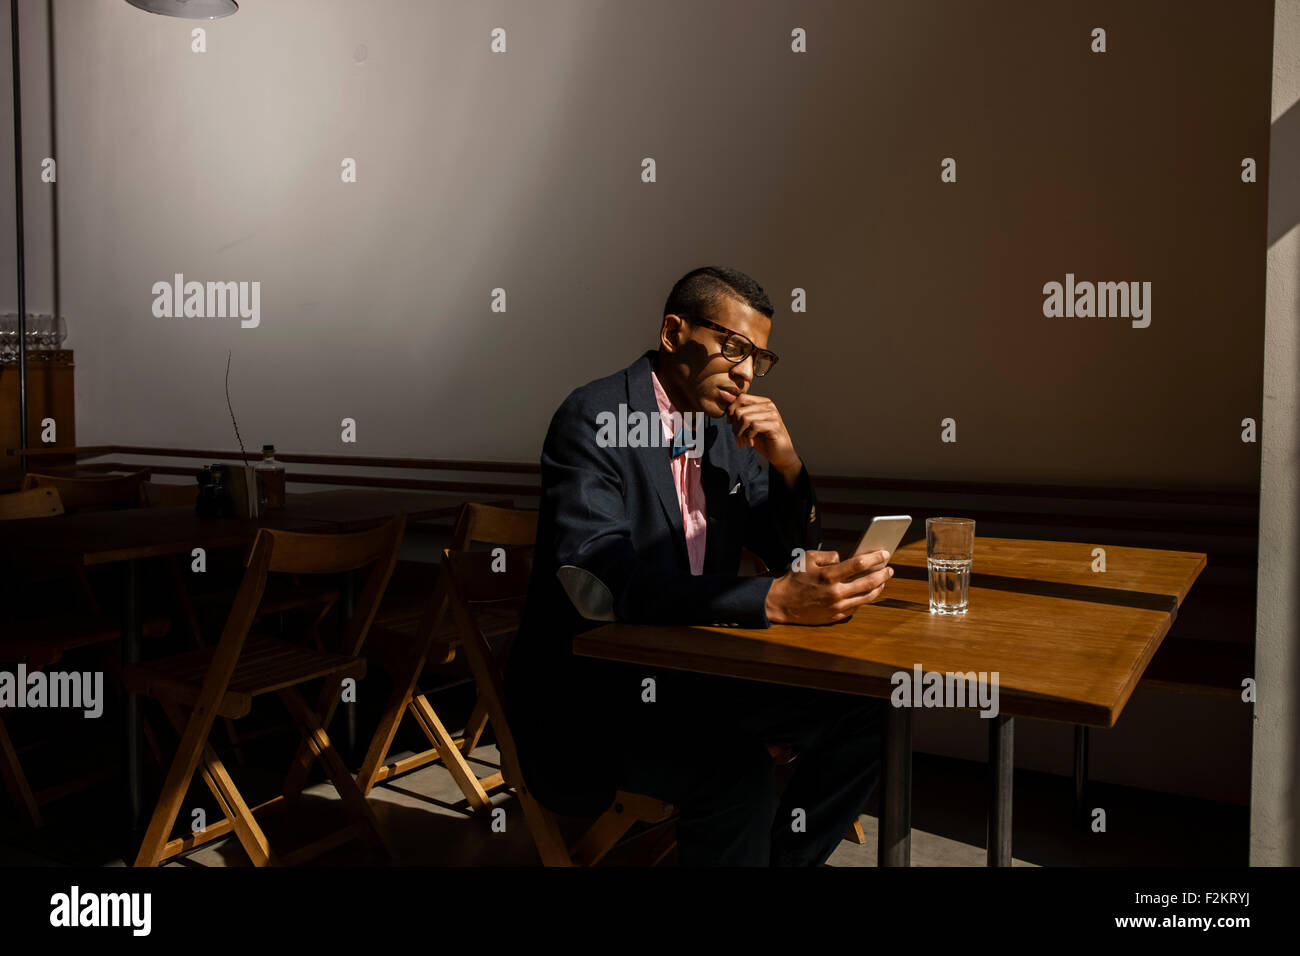 Young man sitting in cafe, waiting for someone, reading text message - Stock Image